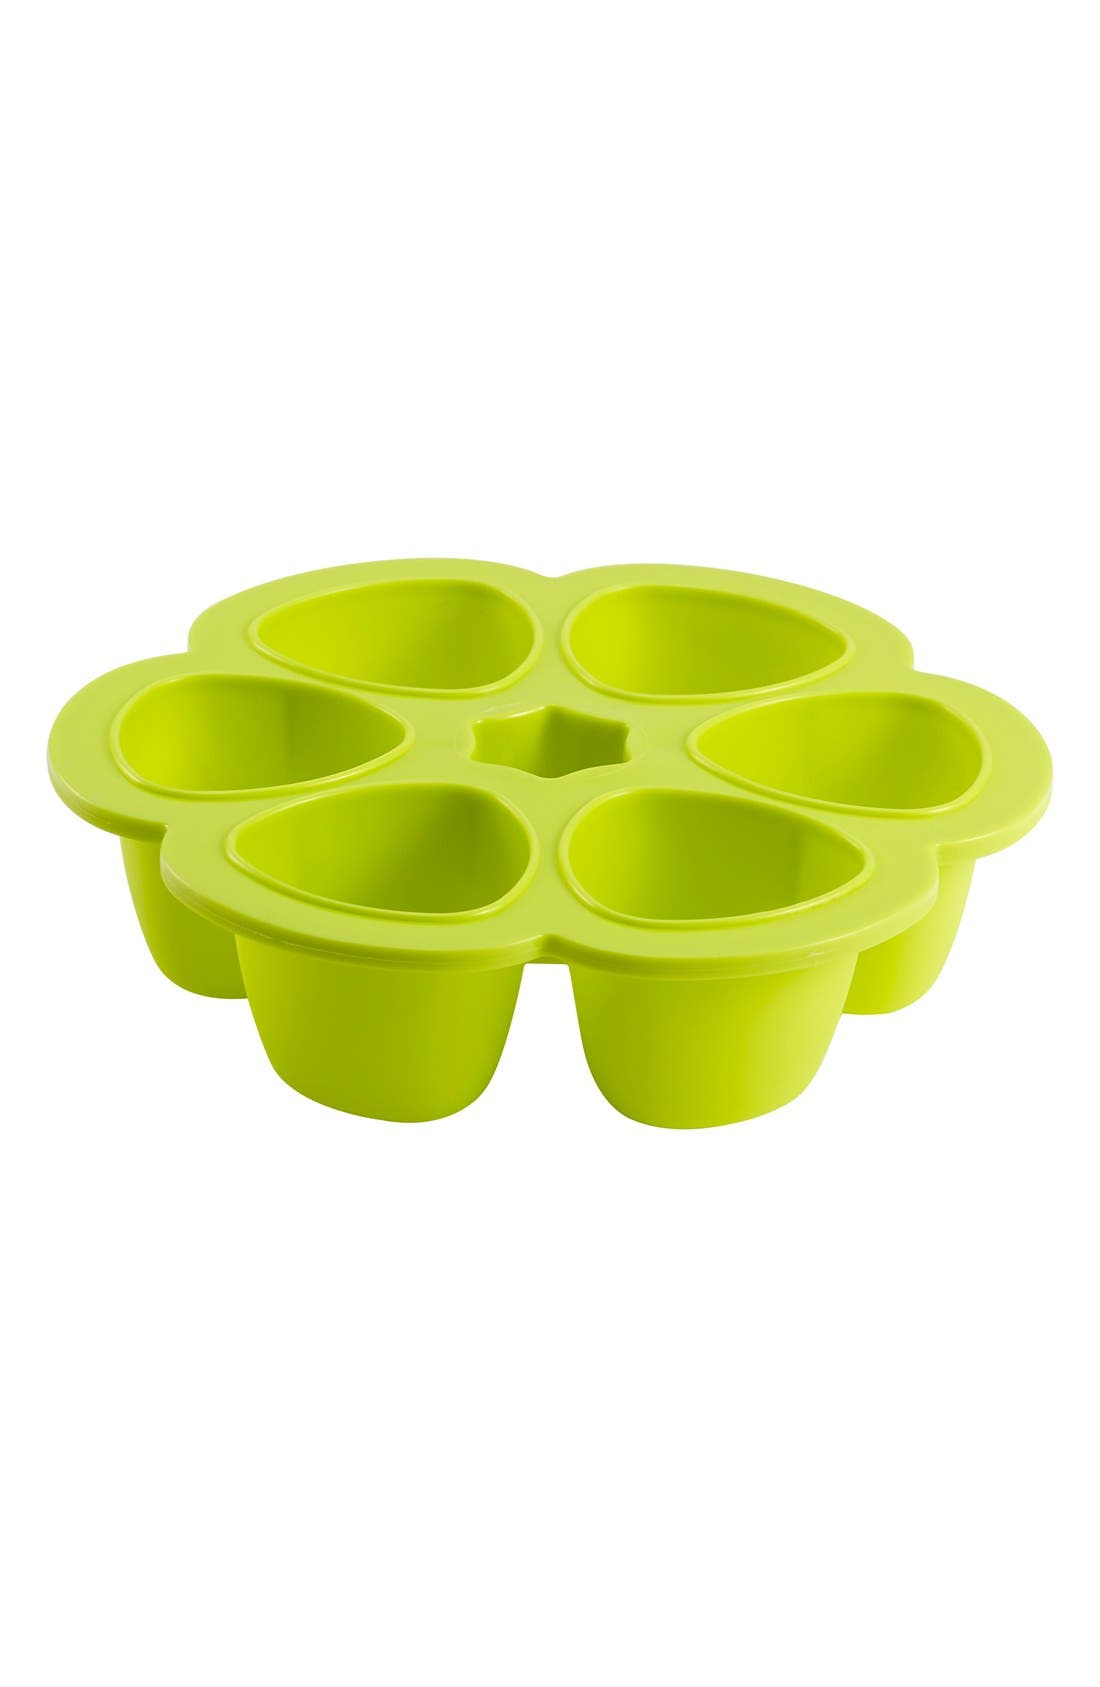 'Multiportions' 3 oz. Food Cup Tray,                             Main thumbnail 1, color,                             320